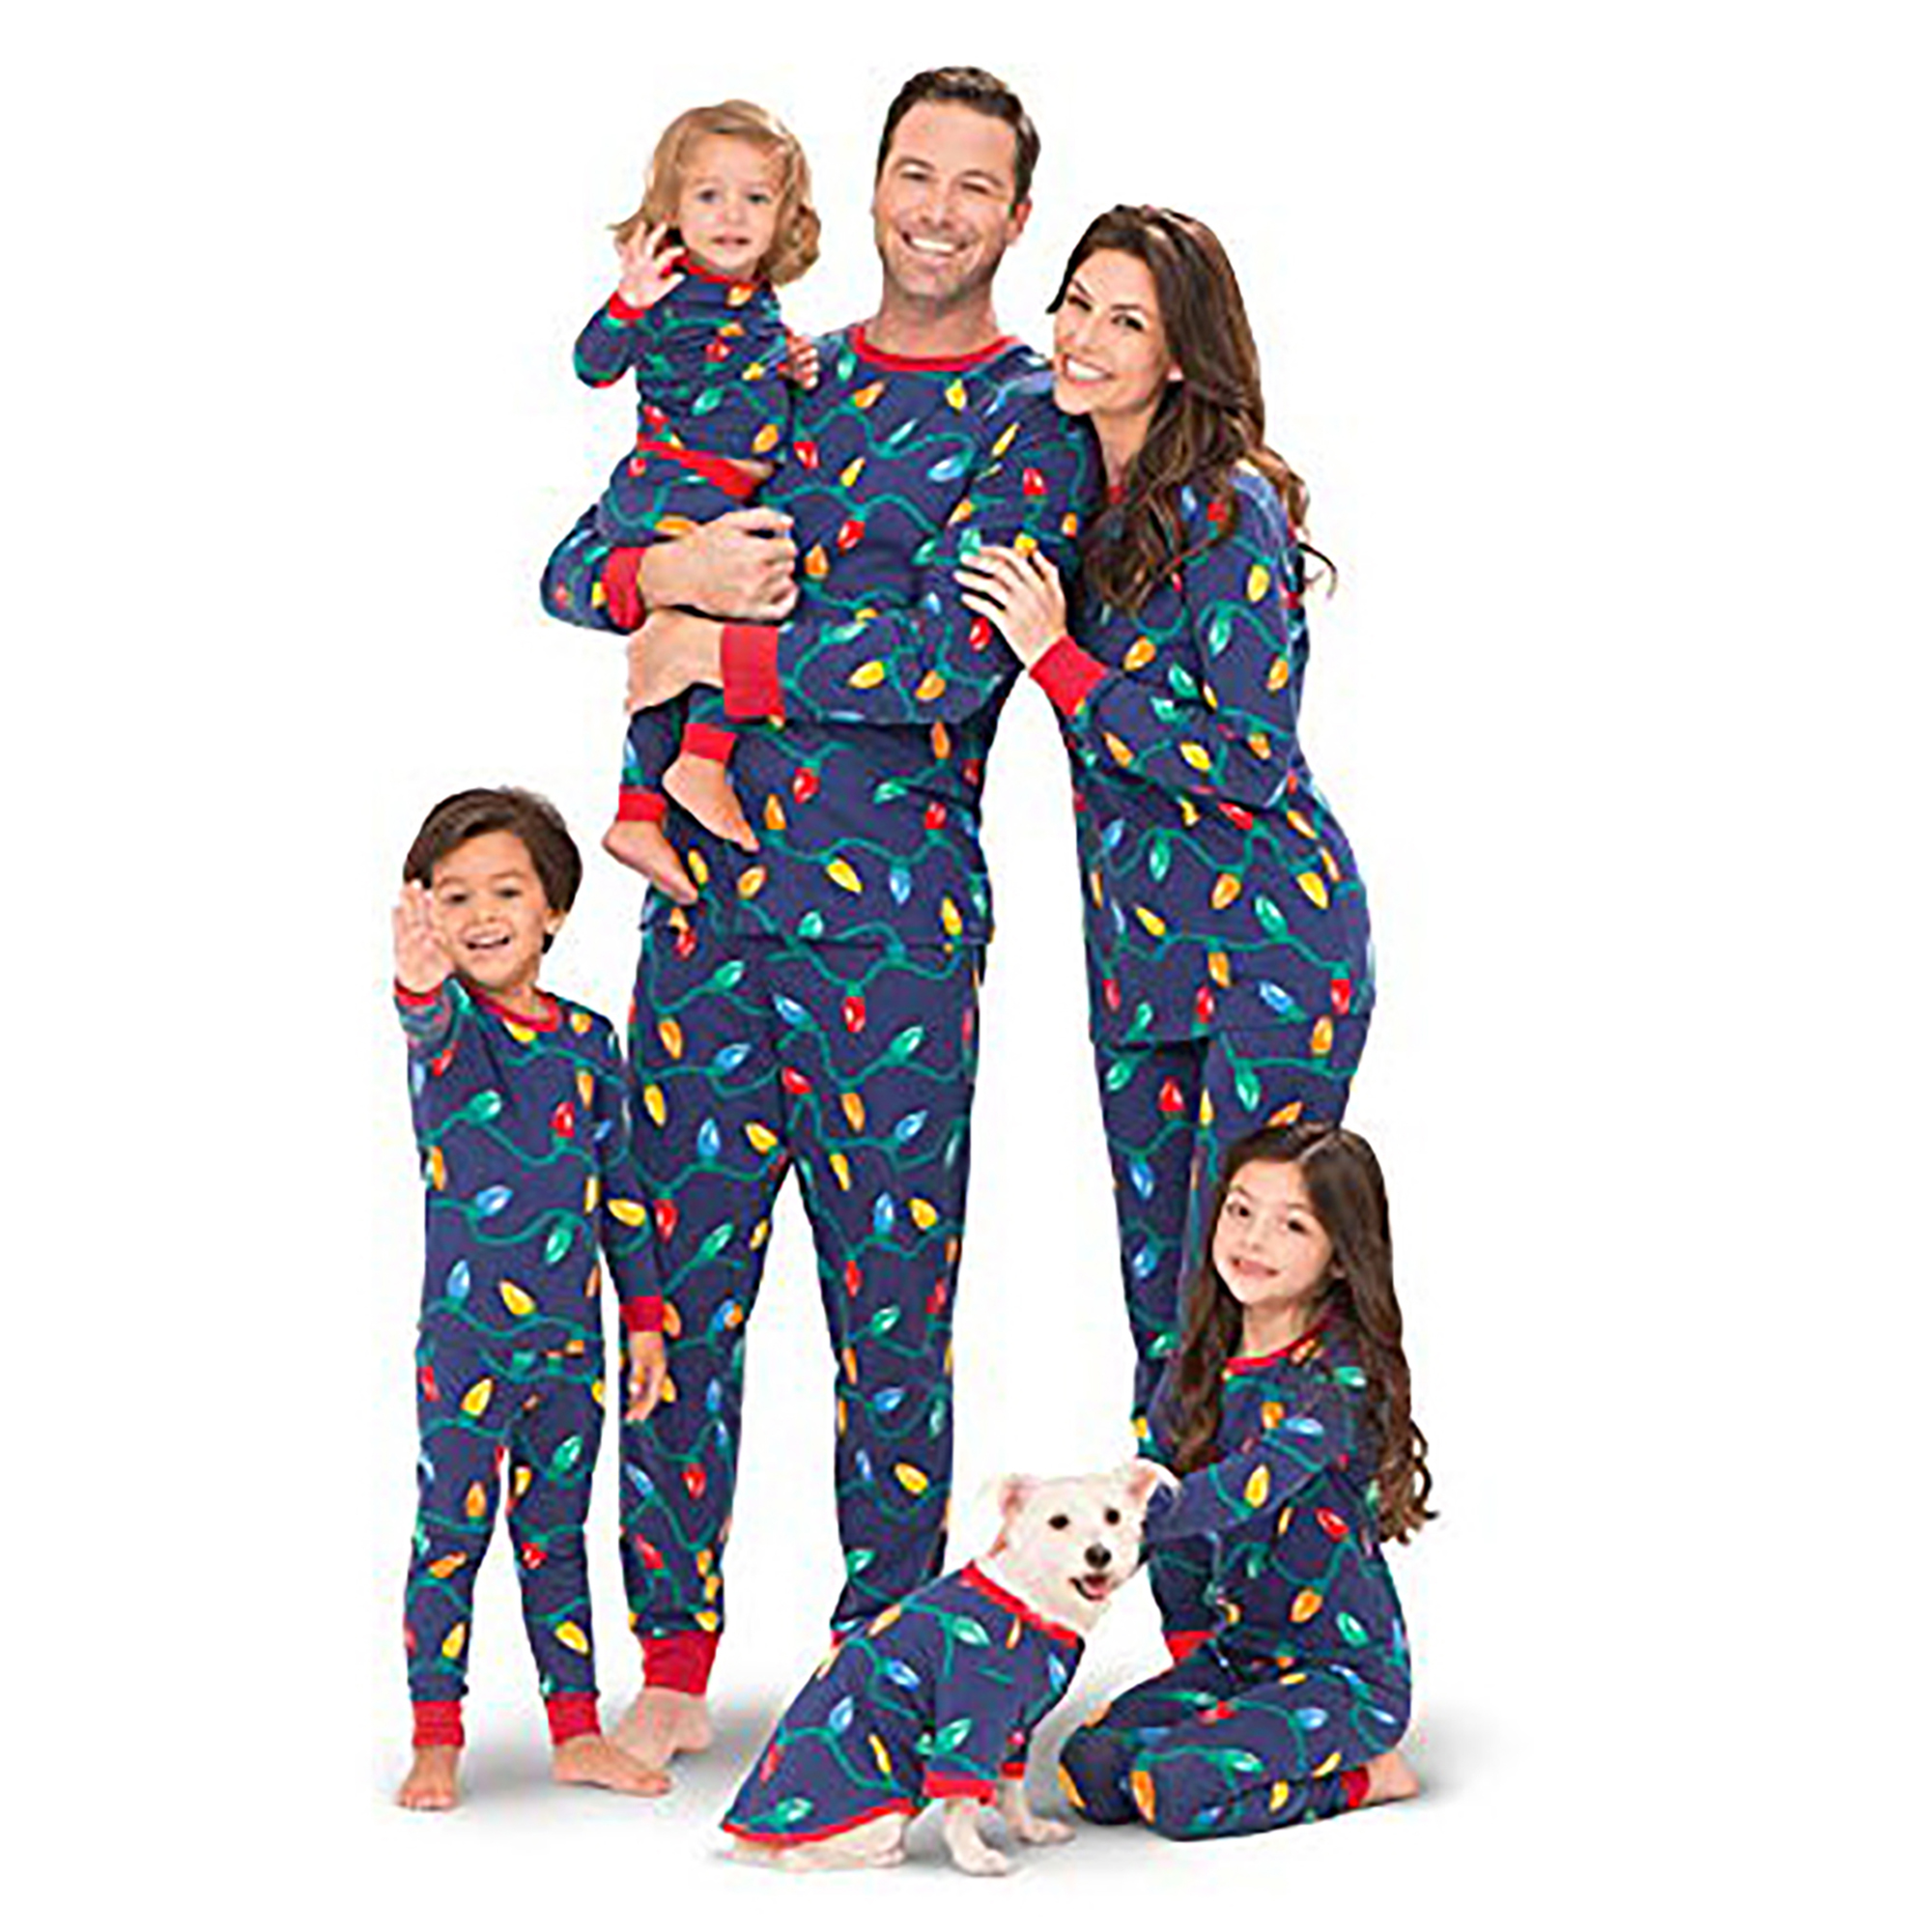 Best Matching Family Christmas Pajamas for 2018